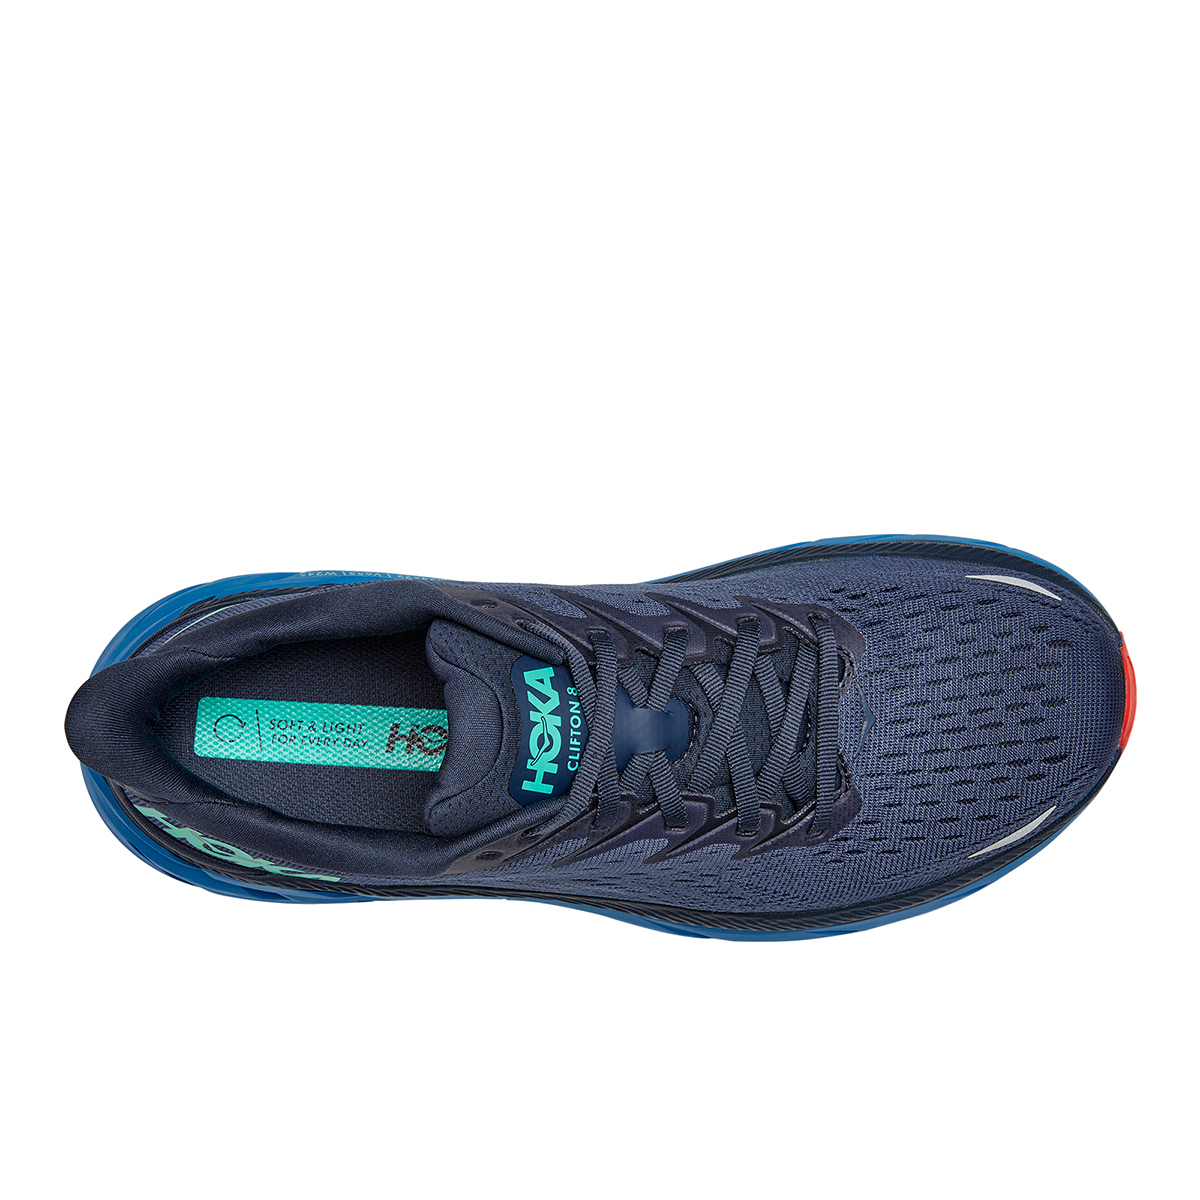 Men's Hoka One One Clifton 8 Running Shoe - Color: Outer Space/Vallarta Blue - Size: 7 - Width: Regular, Outer Space/Vallarta Blue, large, image 3